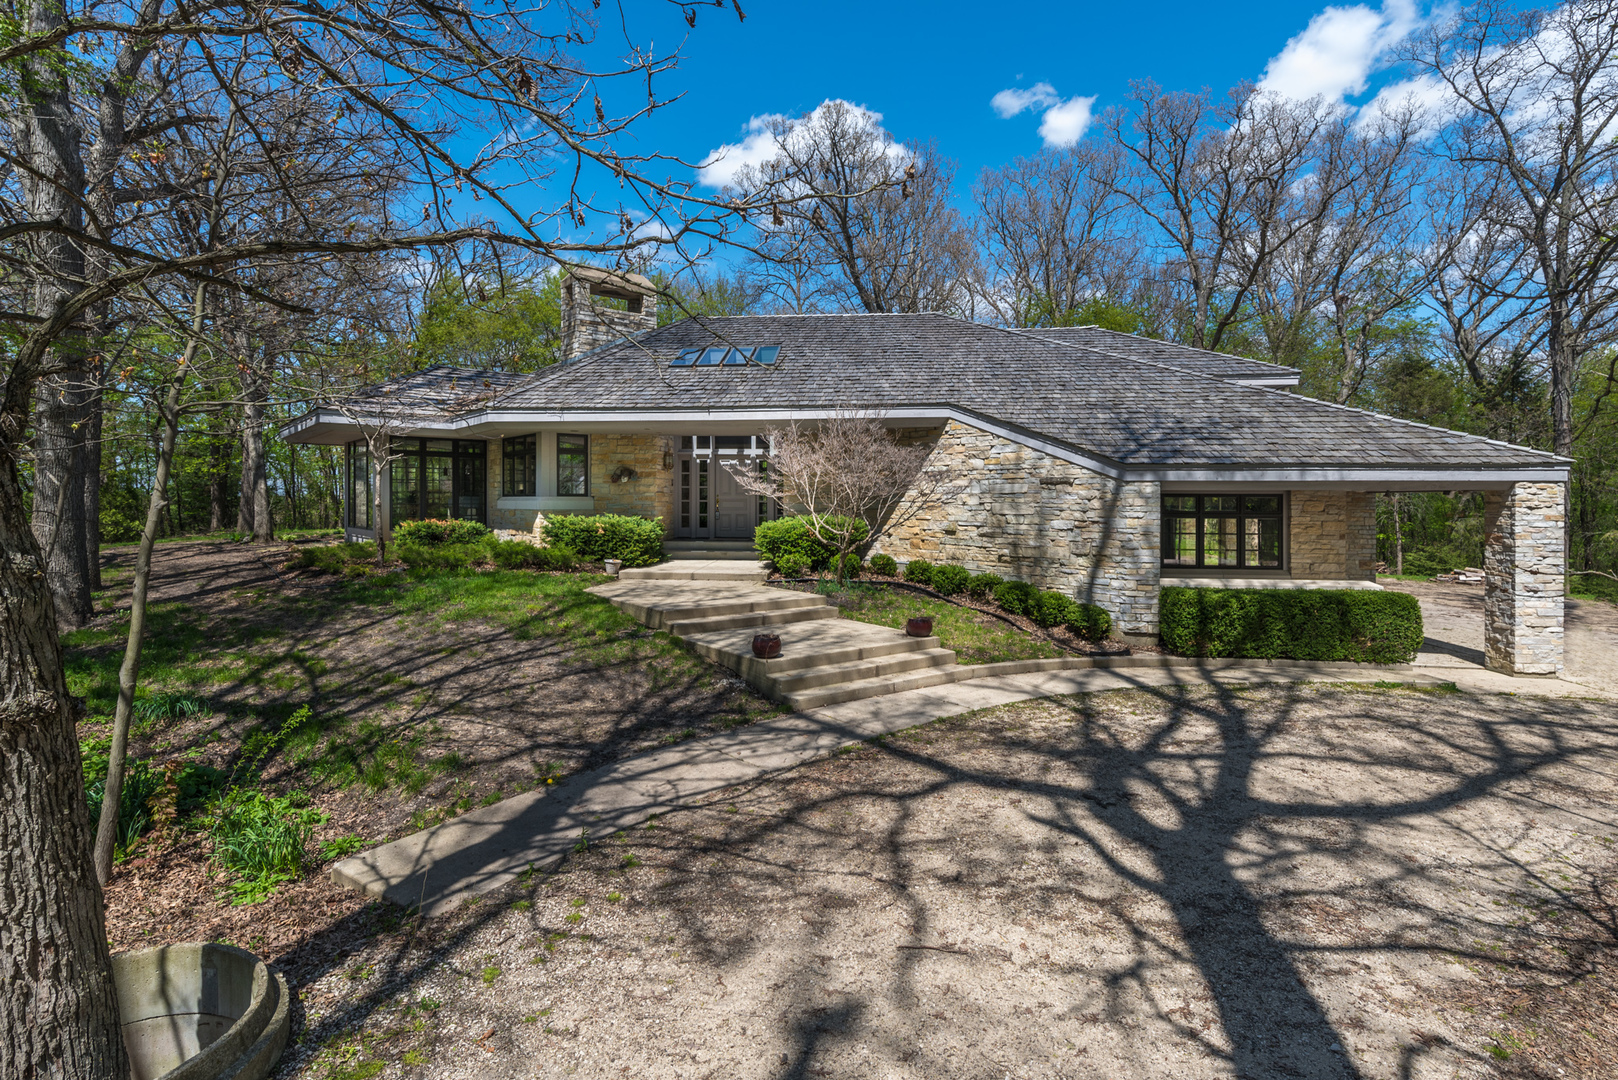 Photo for 14N385 Engel Road, Hampshire, IL 60140 (MLS # 10418406)